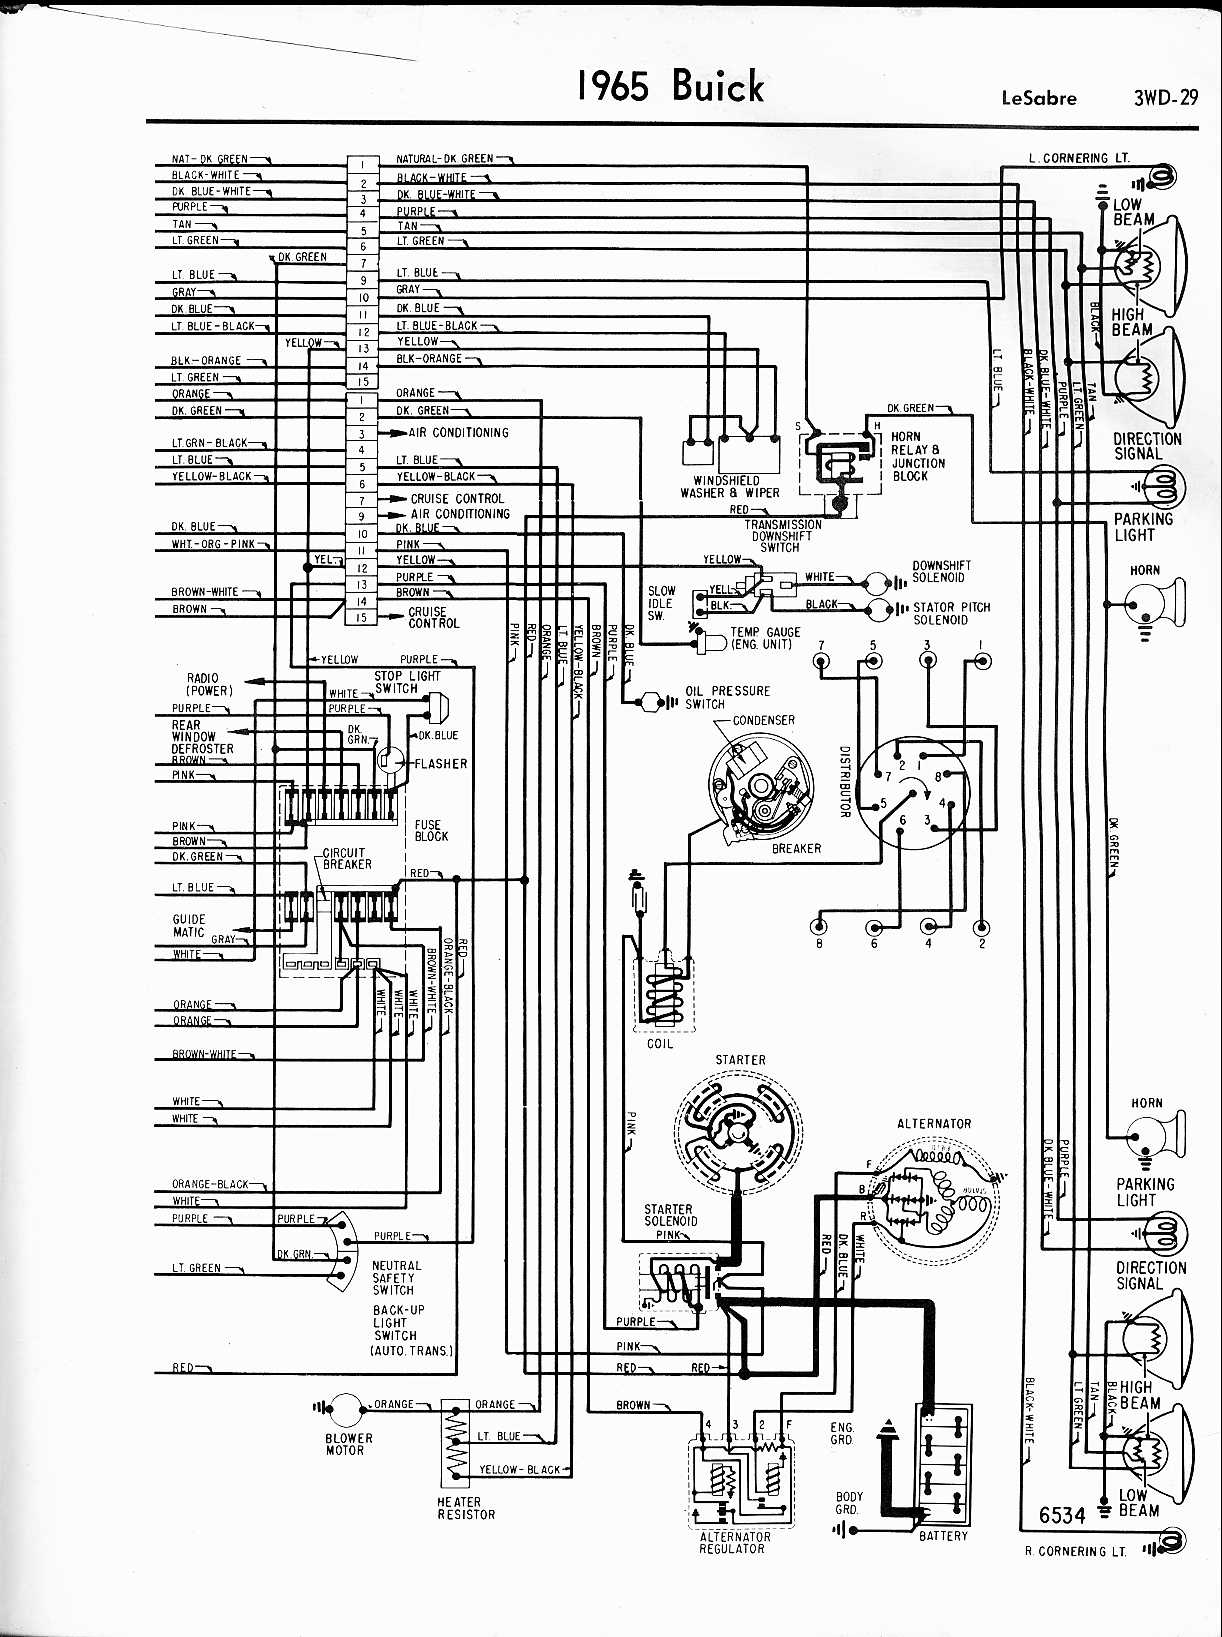 PB3e 17804 in addition 3d1rc 1997 Ford Ranger 12v Aux Power Point Problem No Power together with Replace A Window Regulator as well 43162 Ambient Air Temp Sensor 2 moreover Dodge Avenger Windshield Washer Pump Location. on 2008 dodge avenger window diagram